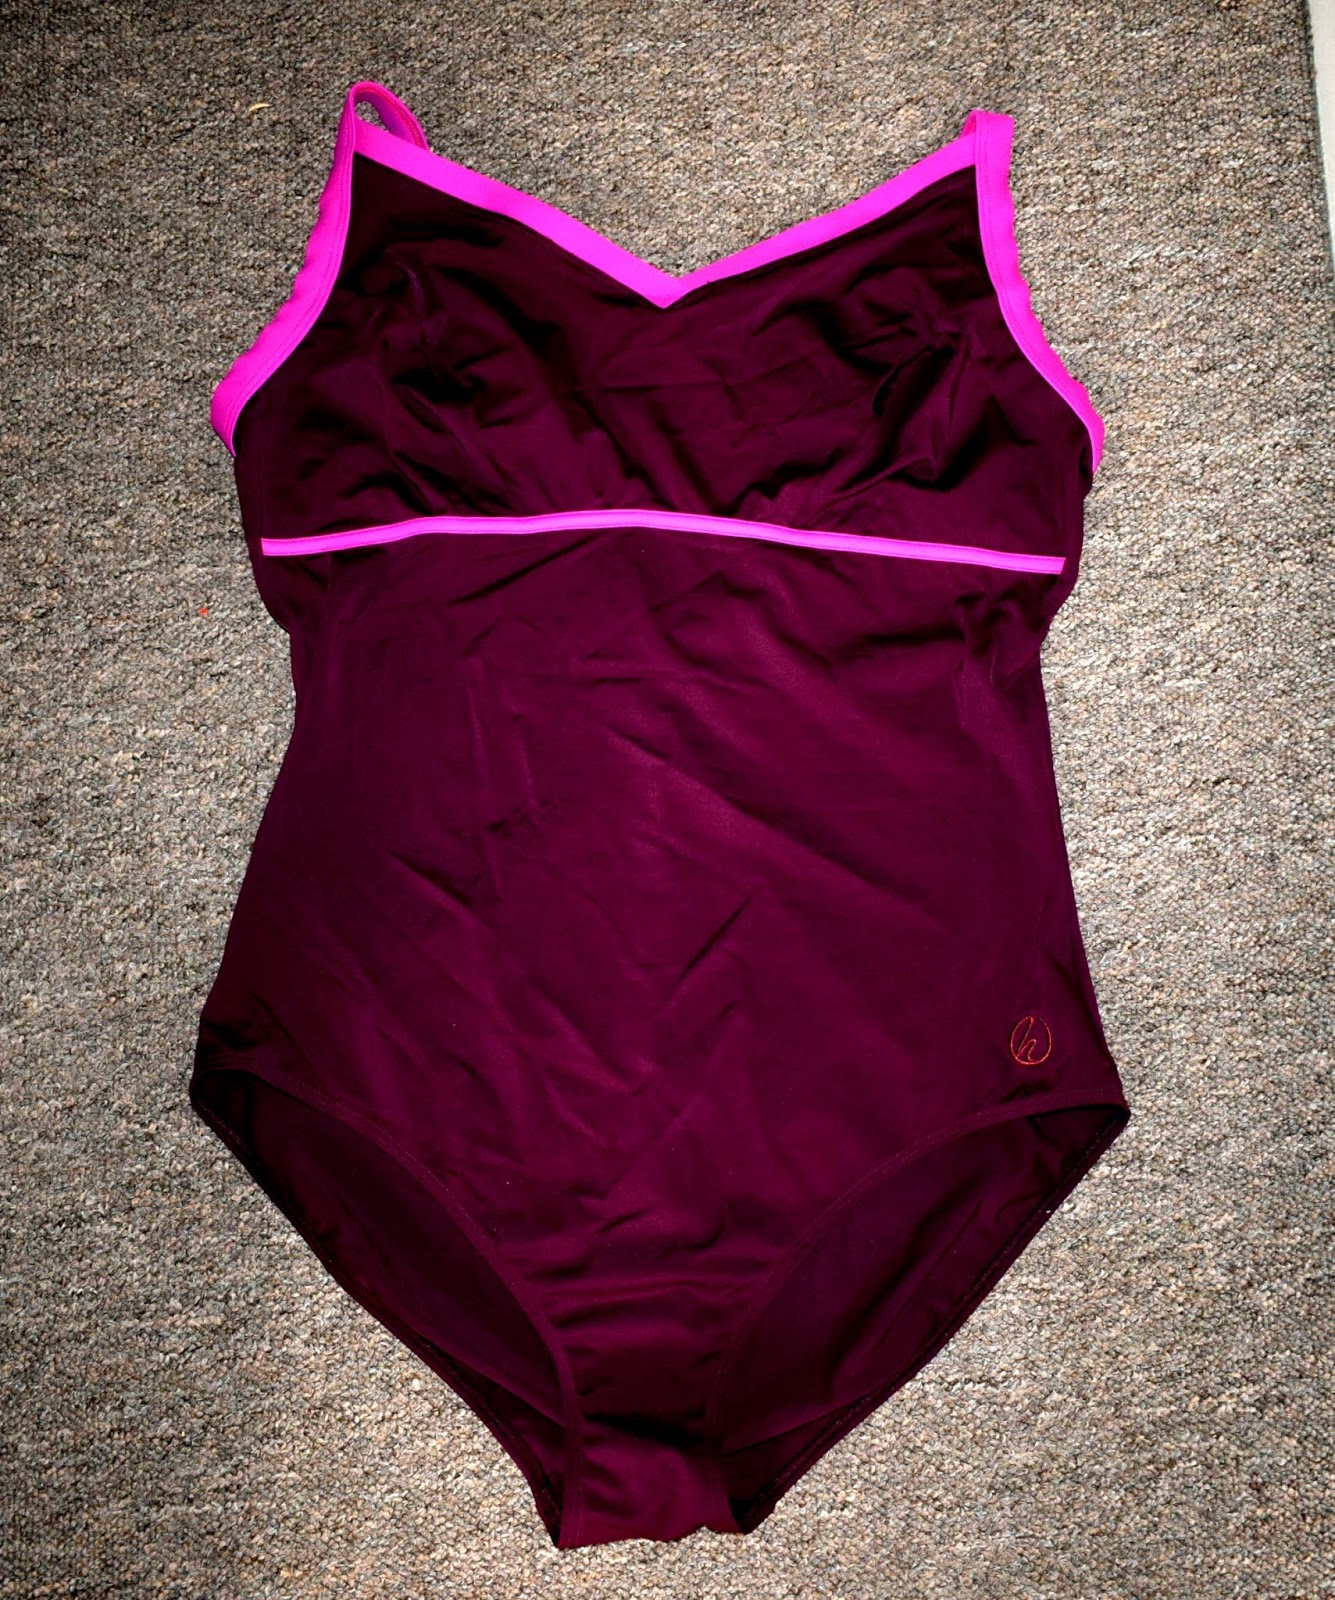 50f83b7f64164 This swimsuit has lots of great features including being chlorine  resistant, resistant to sun creams and oils as well as offering UV  protection.